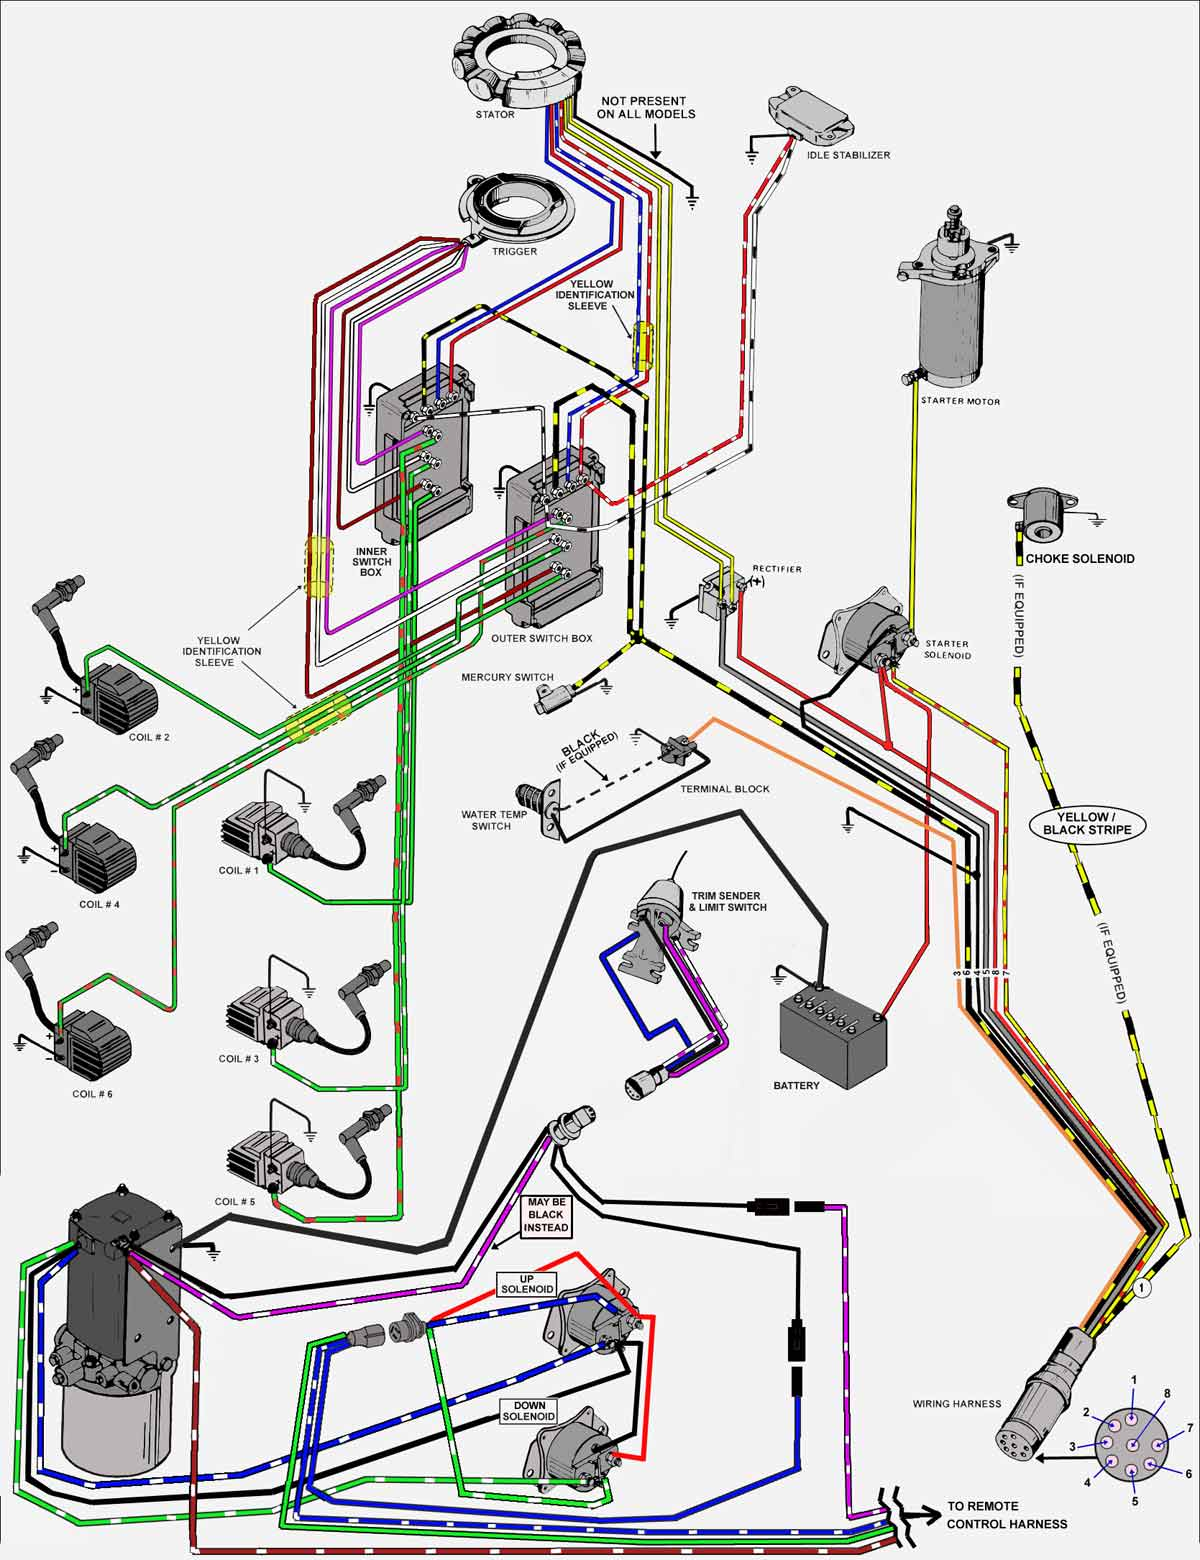 hight resolution of mercury marine wiring diagram 1998 wiring diagram blogs mercury marine wiring diagram mercury 225 wiring diagram